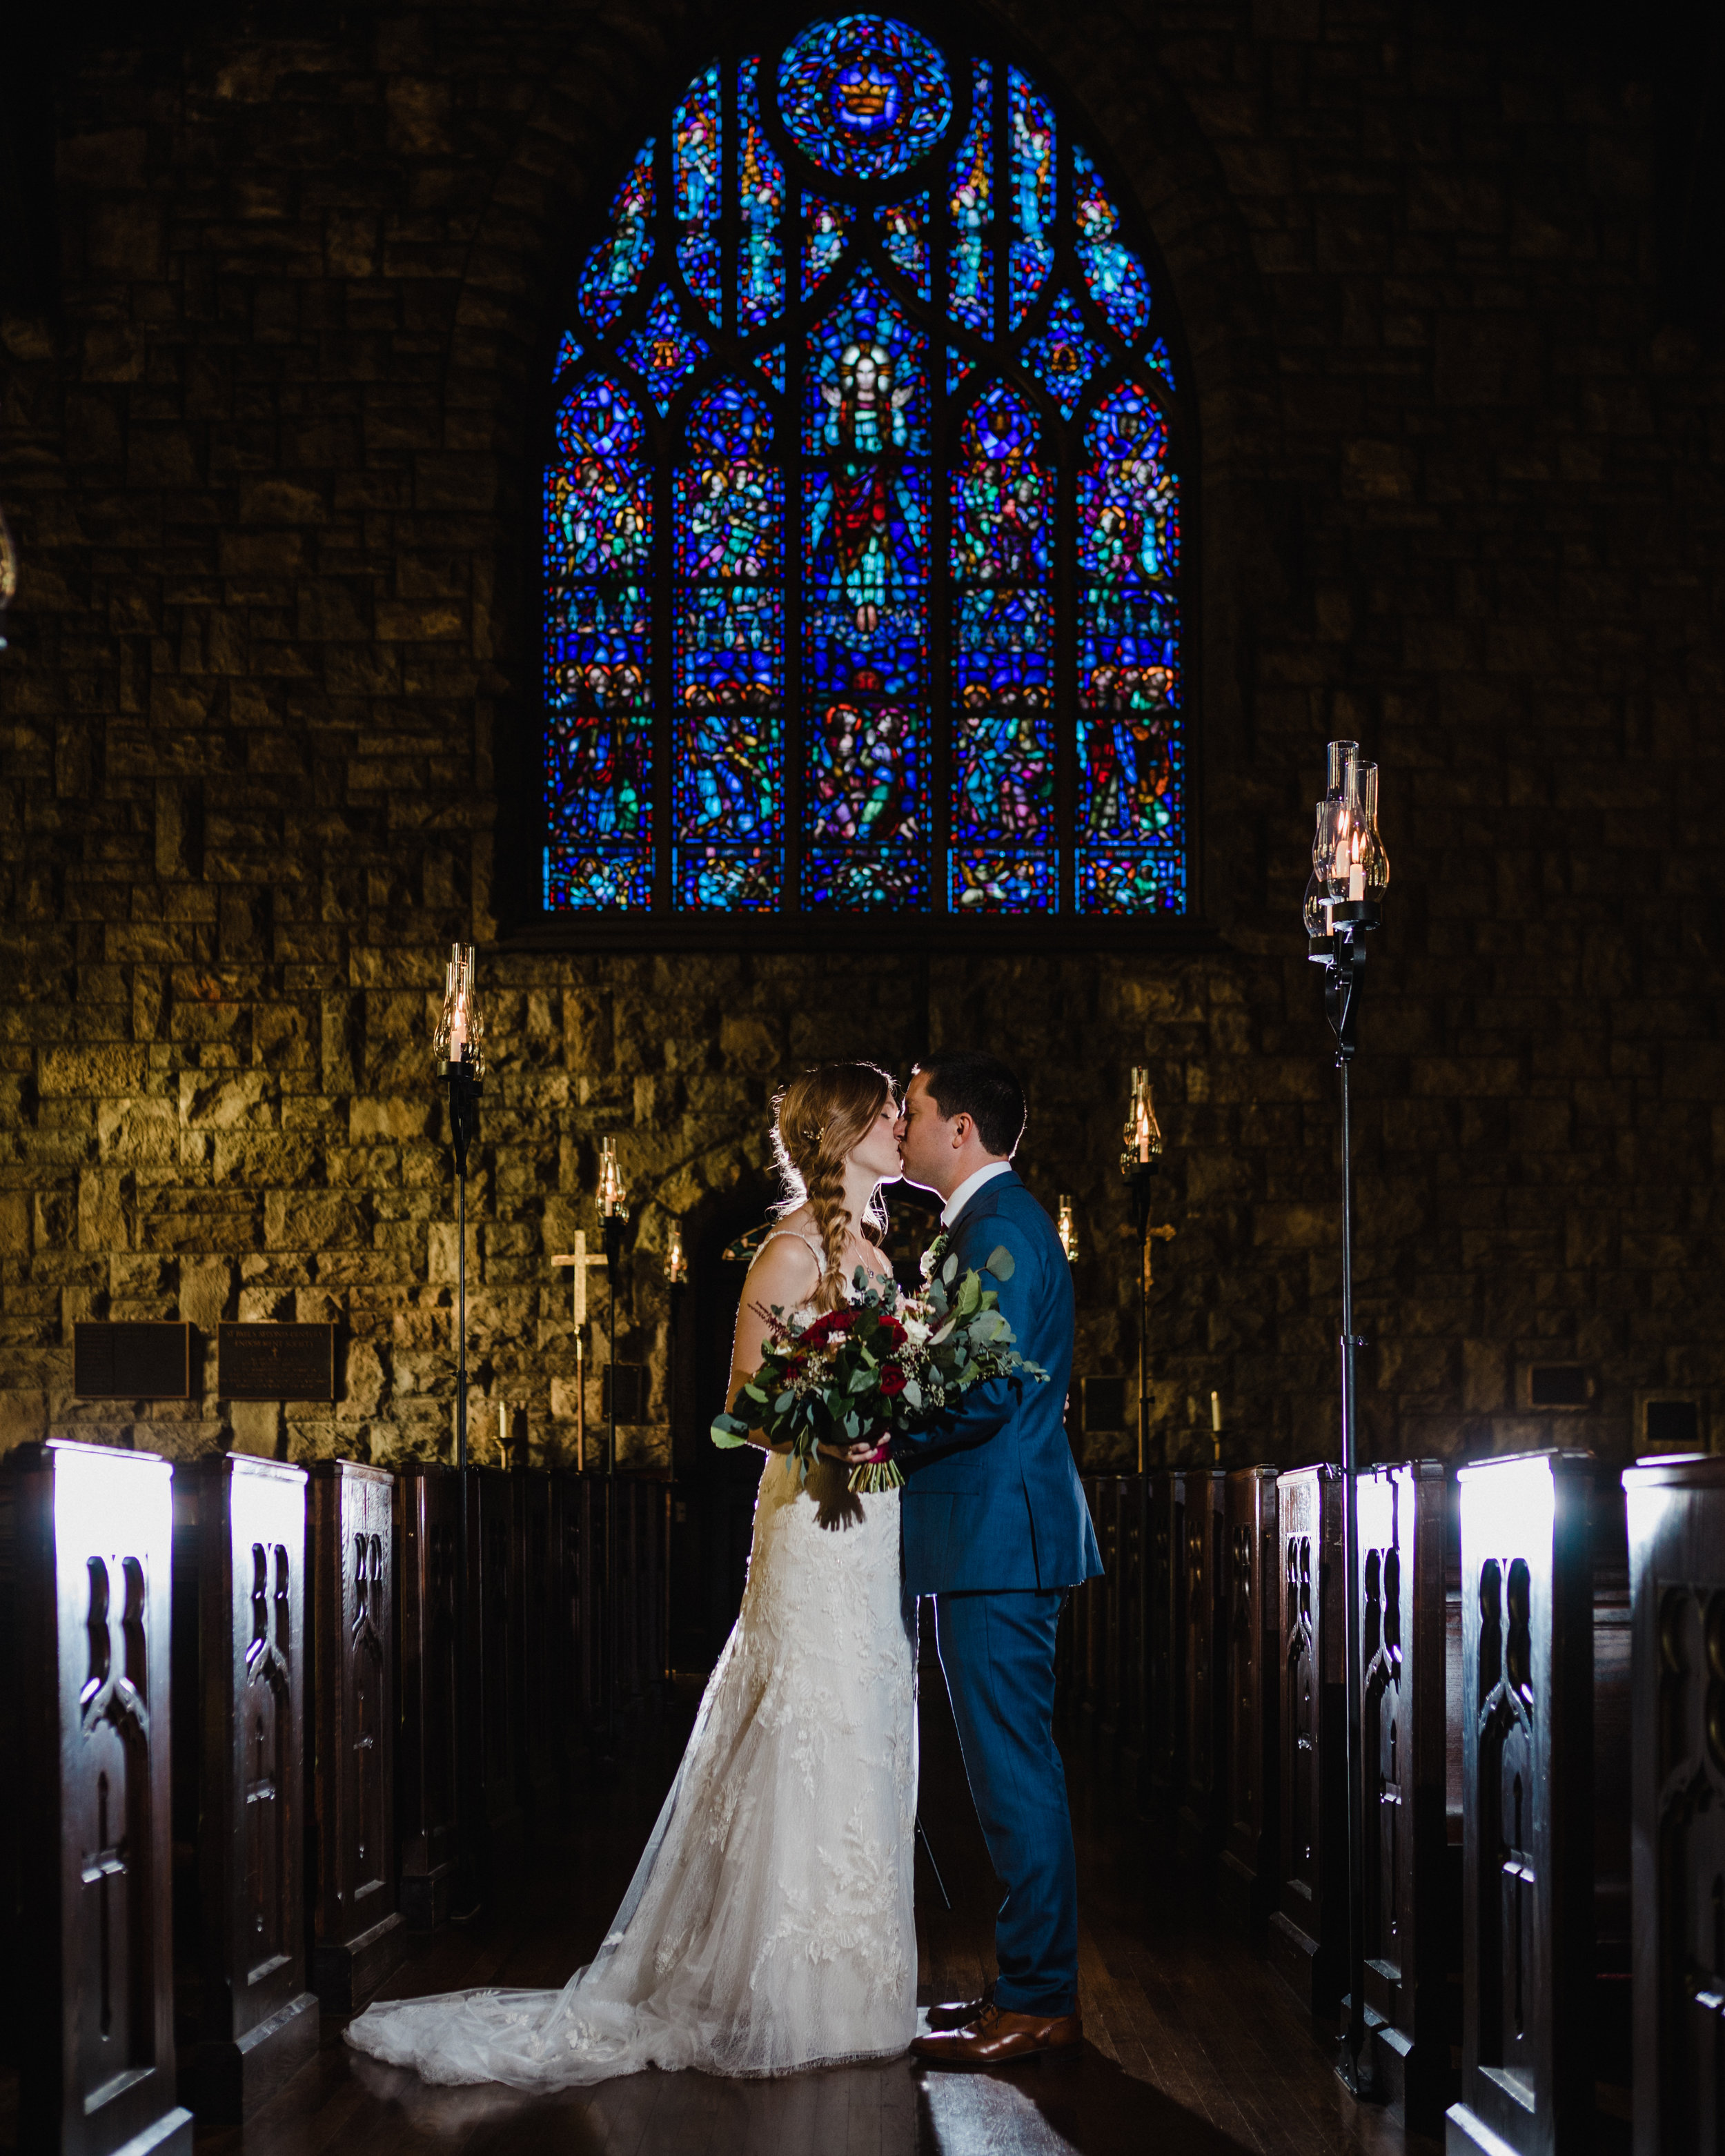 Emily & Scott Wedding | Black Coffee Photo Co 031.jpg